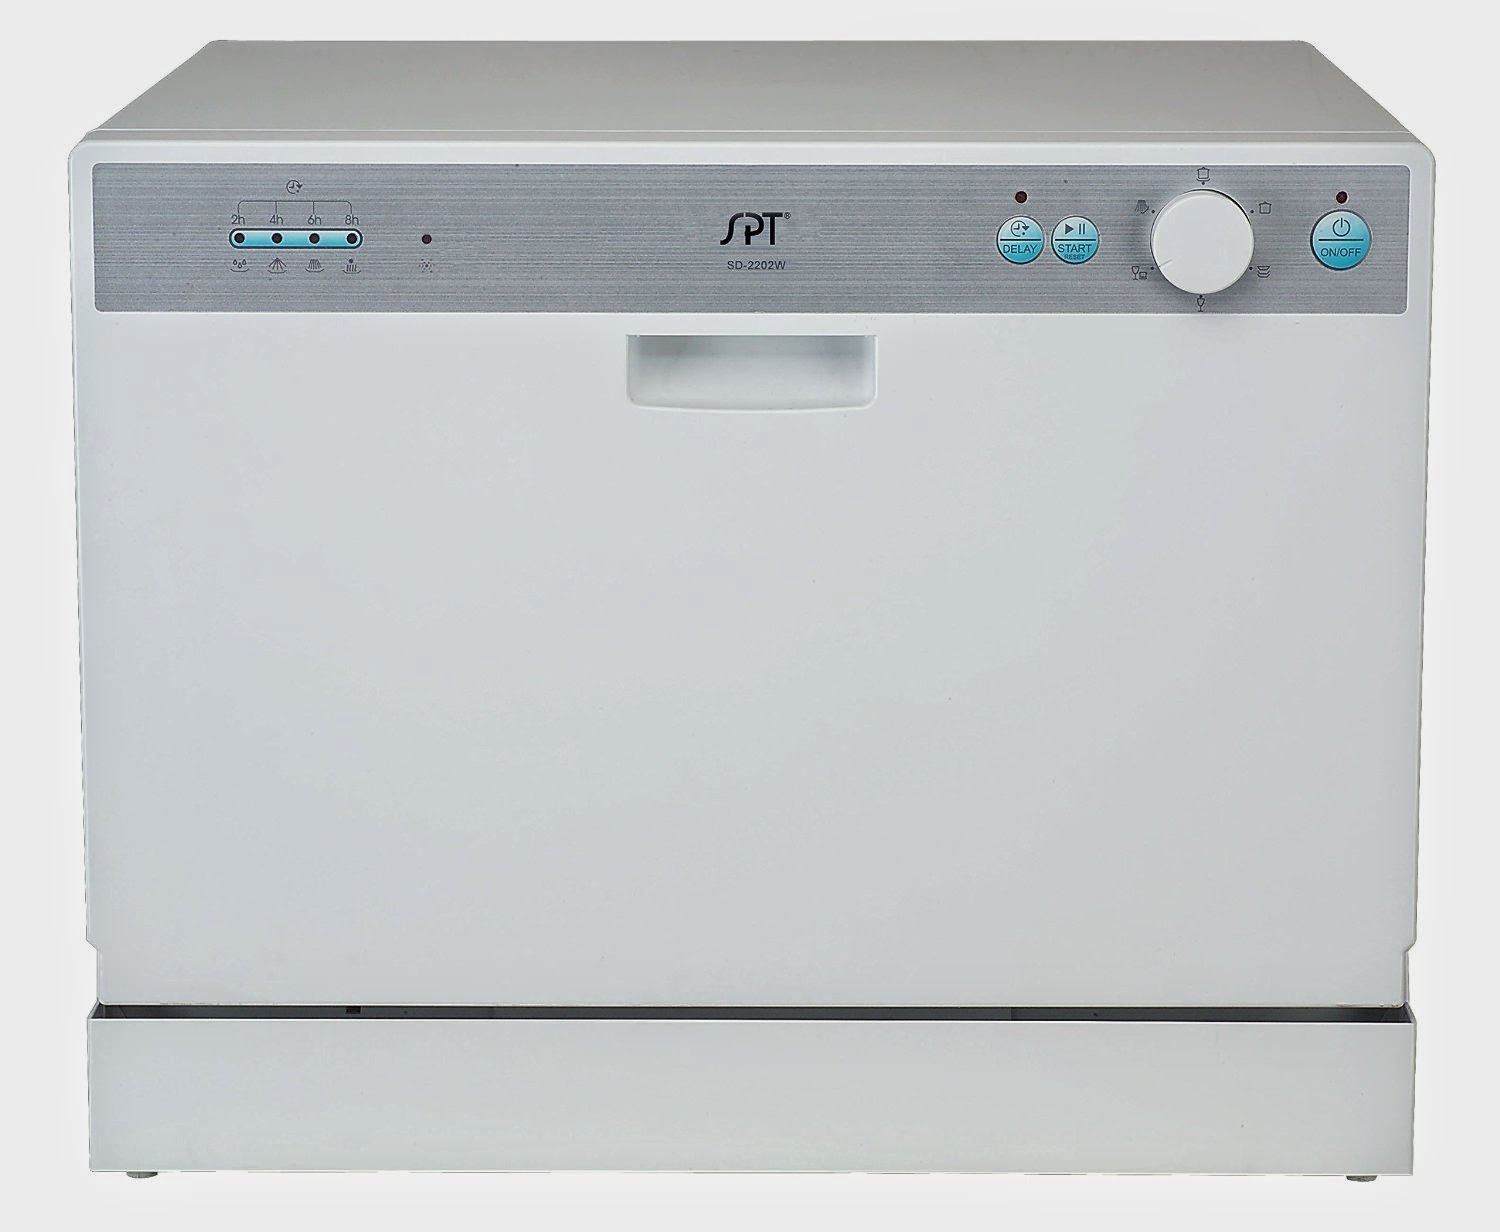 Commercial Countertop Dishwasher Small Dishwasher